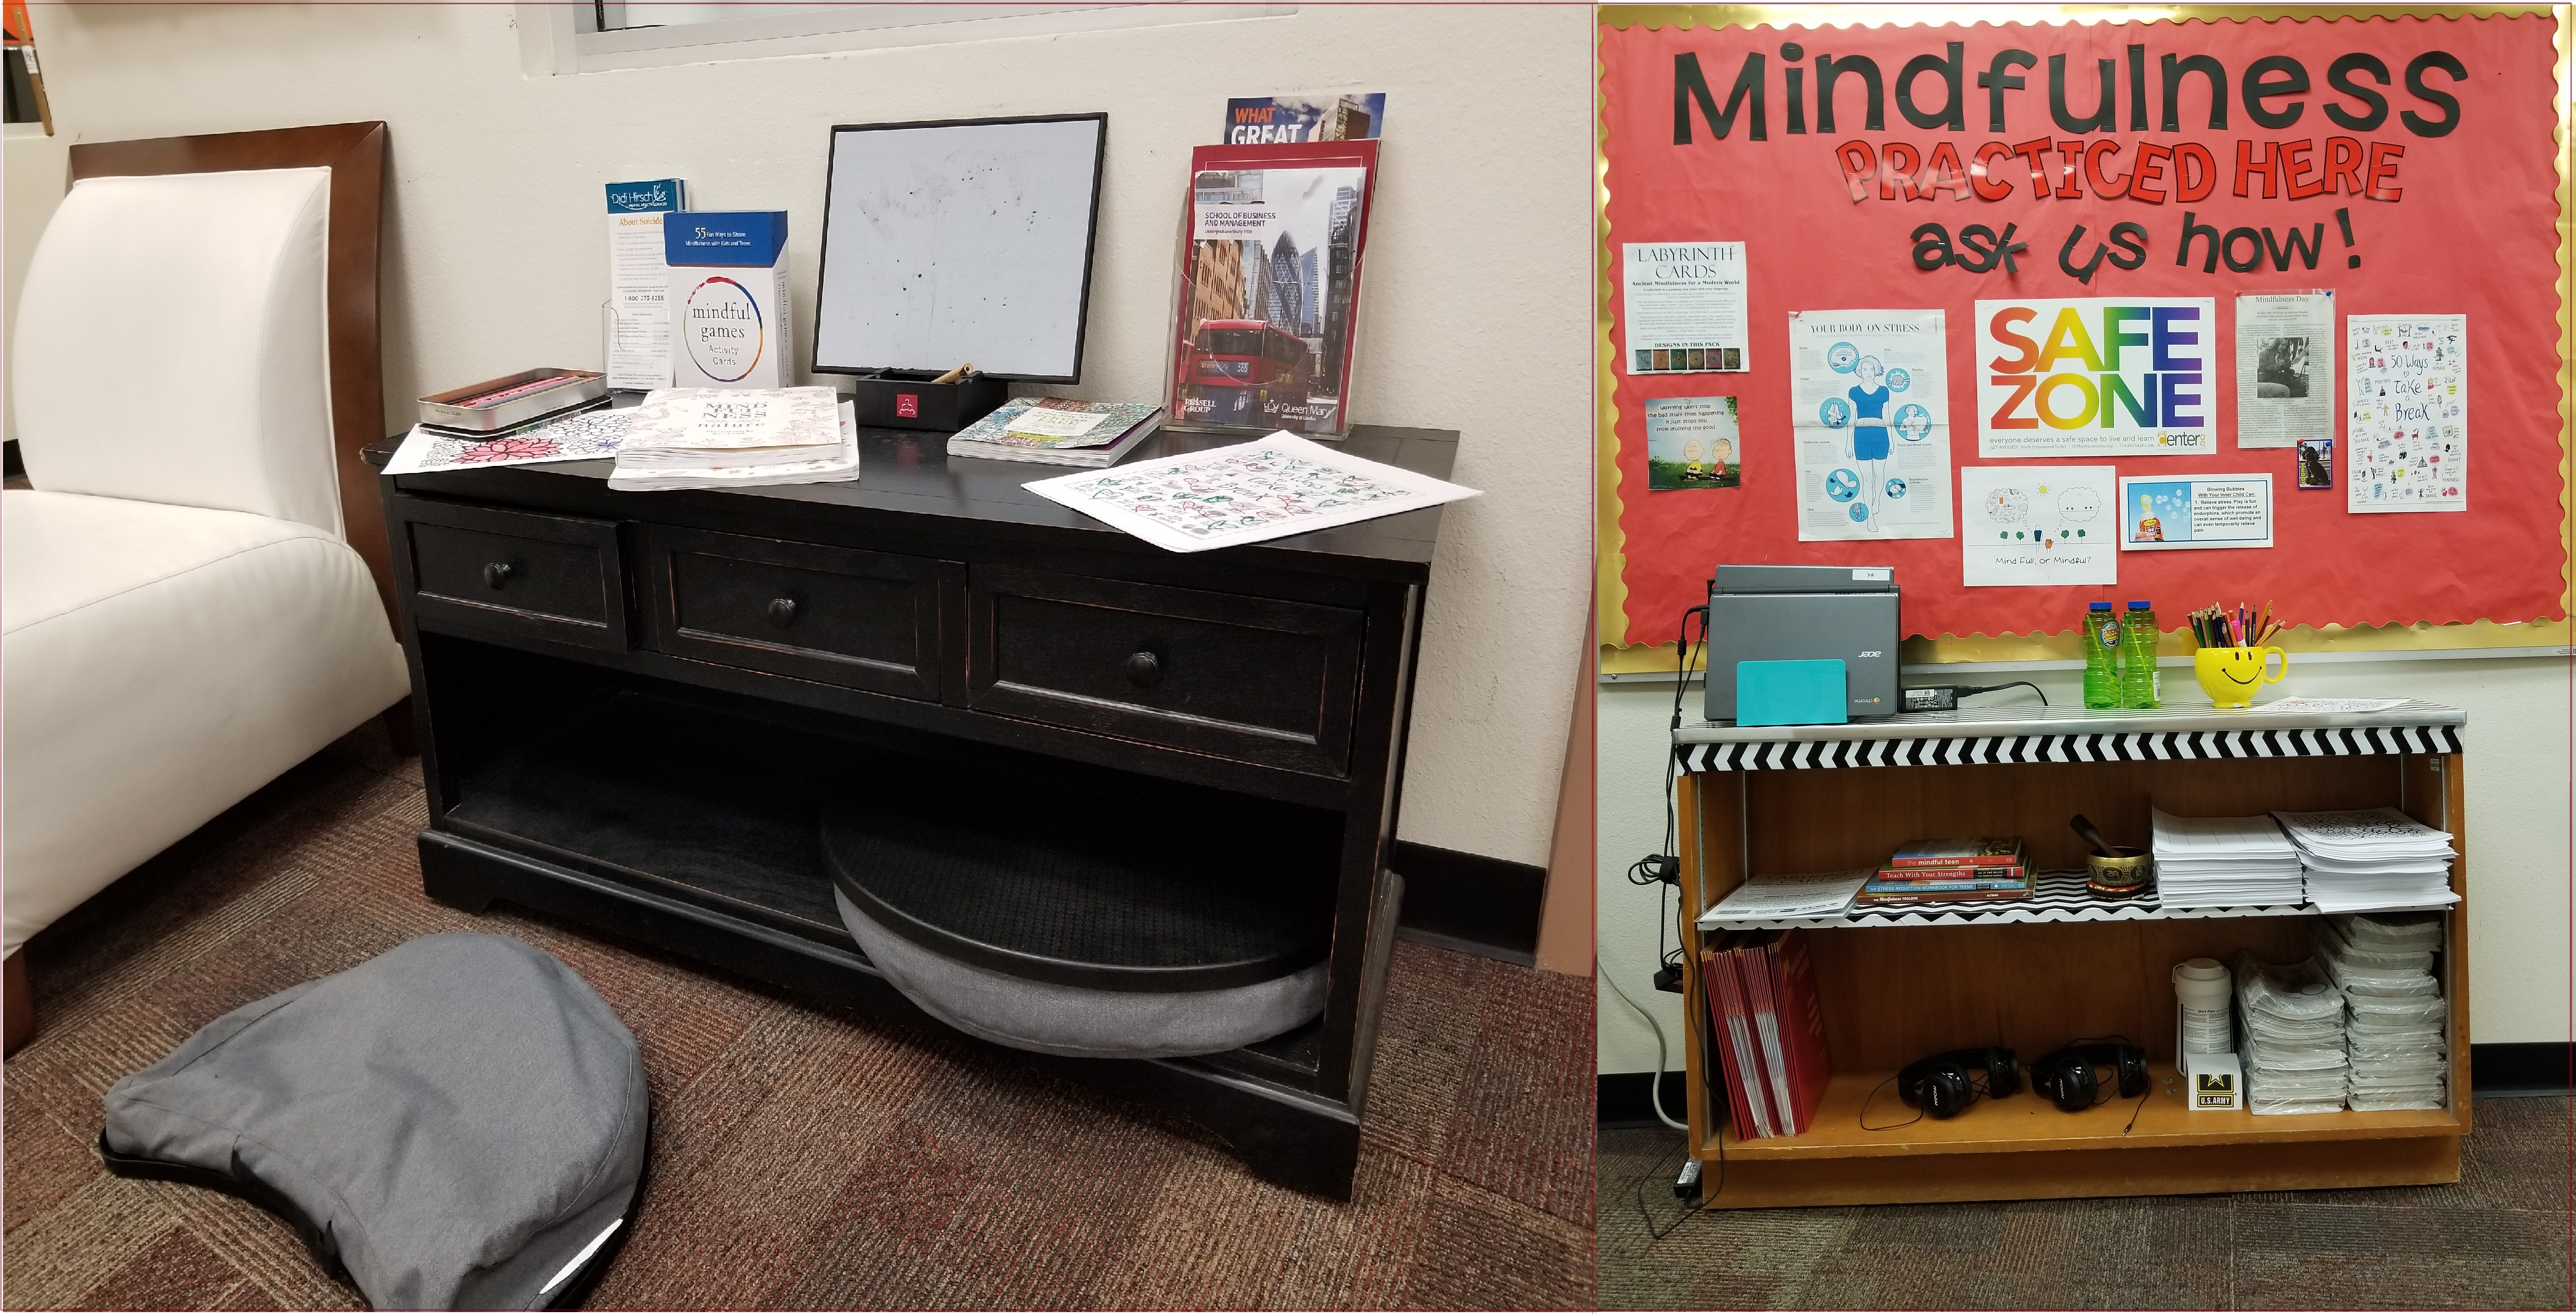 Mindfulness Resources in the Guidance Office